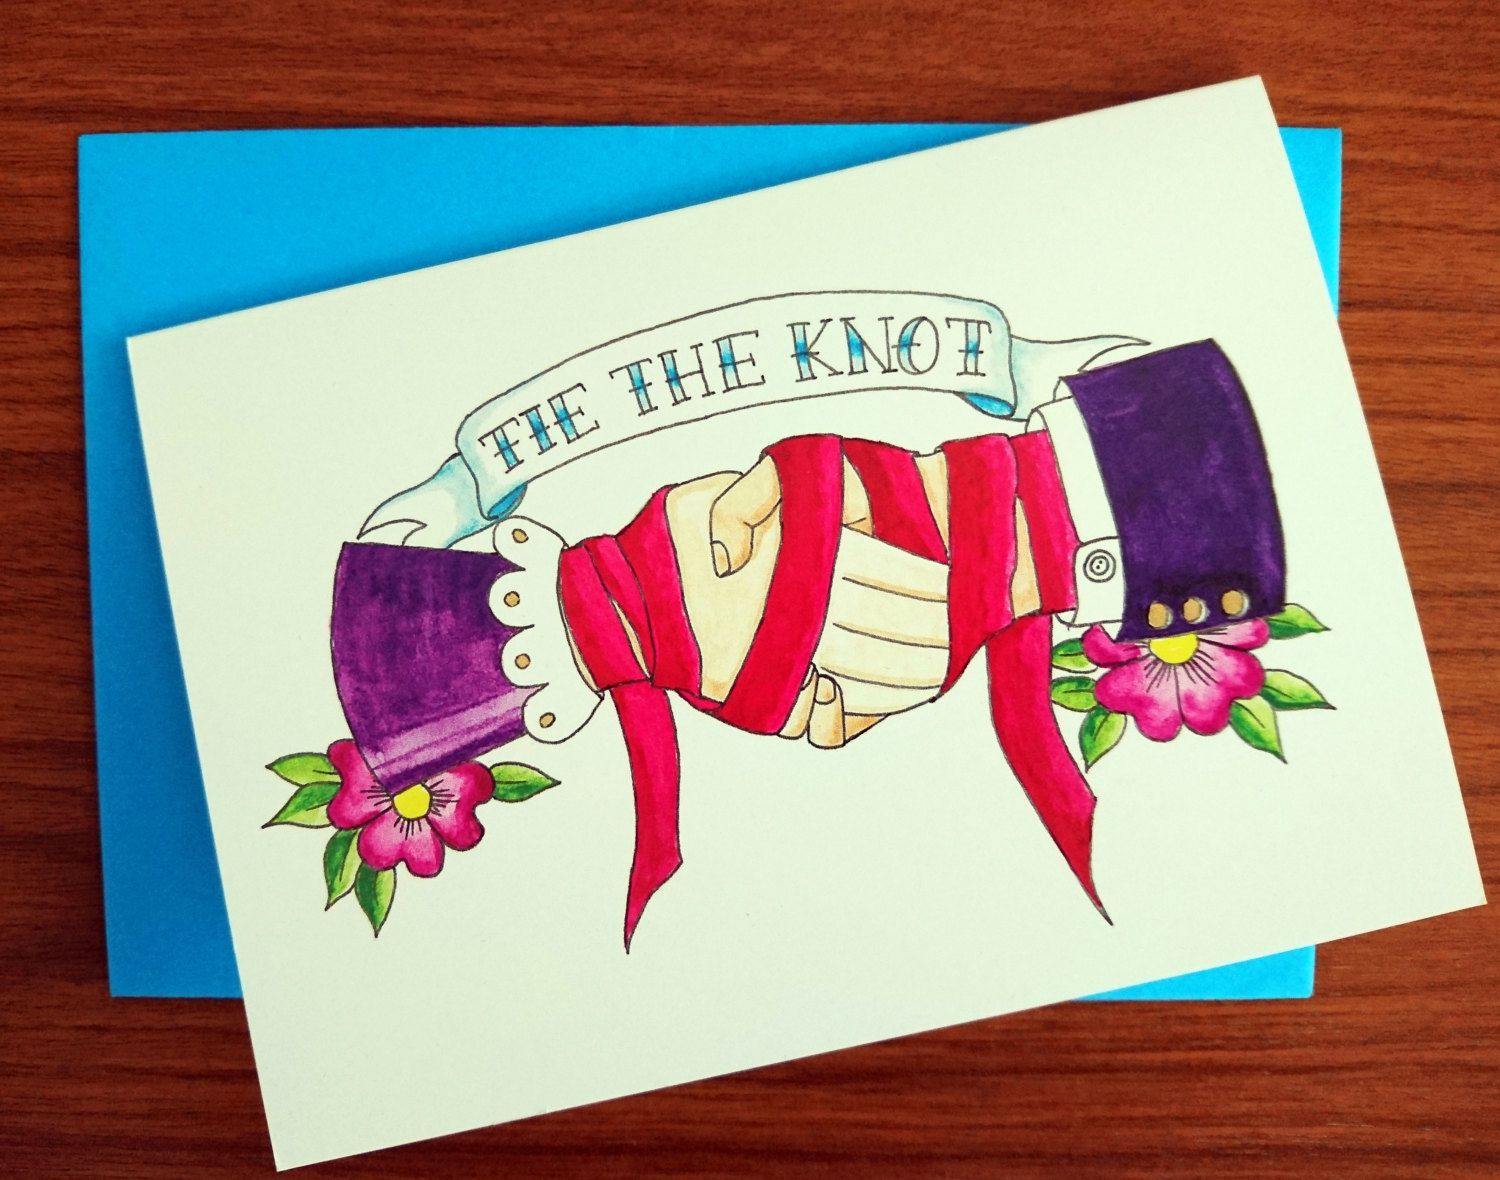 Tie the Knot. Celebrate their vows with this card, showing